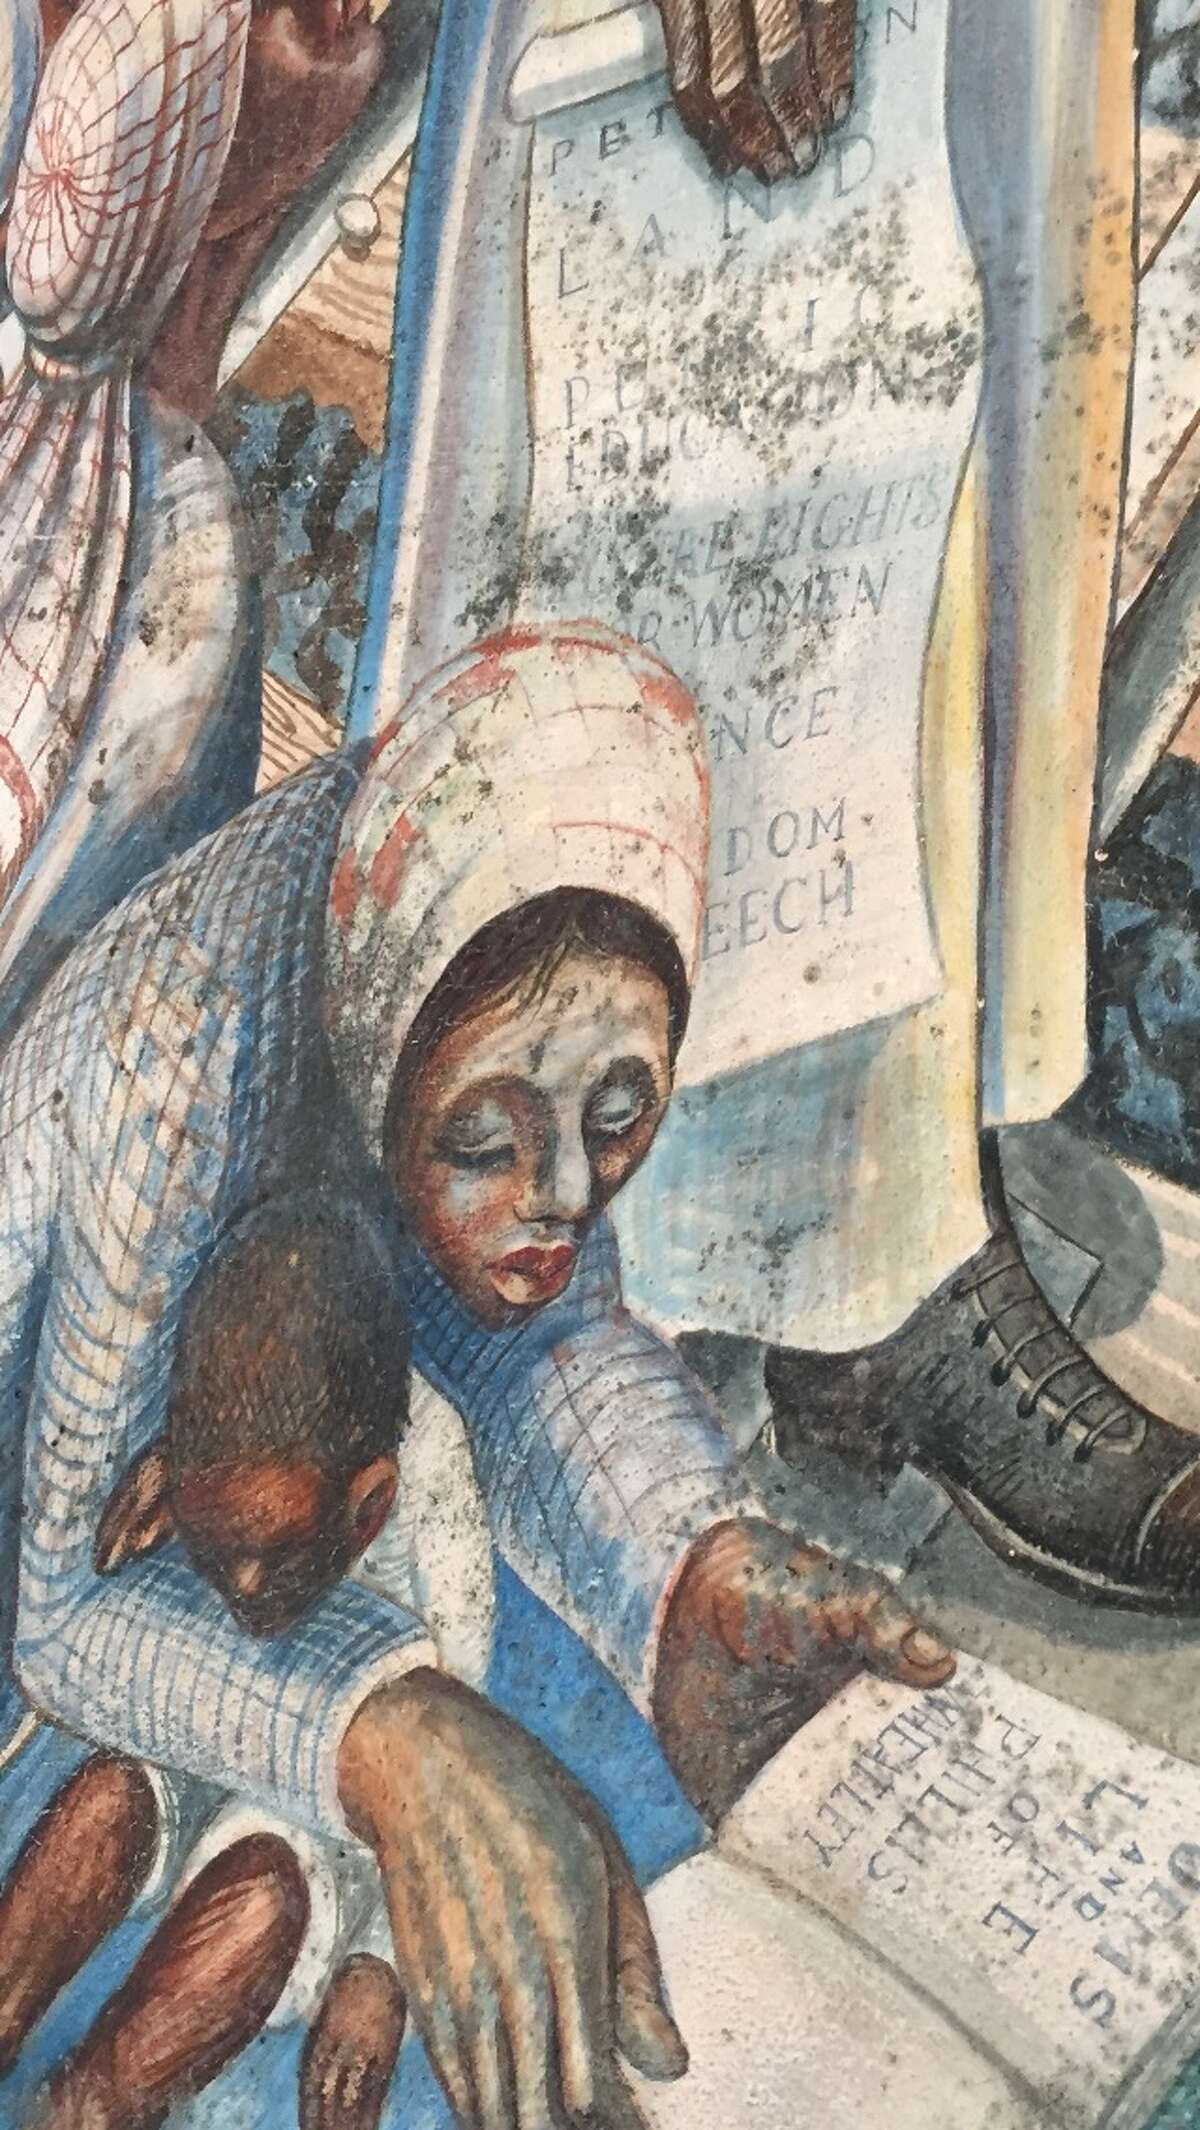 The John Biggers 1953 mural, Contribution of Negro Women to American Life and Education, covers a wall inside the Blue Triangle Multi-Cultural Association's headquarters in Houston's Third Ward. The work featuring Harriet Tubman, Sojourner Truth and Phillis Wheatley was painted when the building was operating as the Blue Triangle YWCA. A leaky roof had been threatening the mural. Caretakers pleaded in January 2016 for contributions - roughly $50,000 for a patch job and $200,000 for a complete restoration. The funding never came. In August 2017, Hurricane Harvey swept through the Houston region and sent water through the roof and walls of the historic building at 3005 McGowen. A week later, the mural has hundreds of black bursts of mold. Funders and art conservators are responding the national artistic emergency with restoration offers and money. Biggers, who founded the art department at Texas Southern University, died in 2001 at 79. He is considered one of the foremost artists who captured the black experience of the 20th century and mentored several generations of Houston artists. This photo was taken on September 8, 2017.